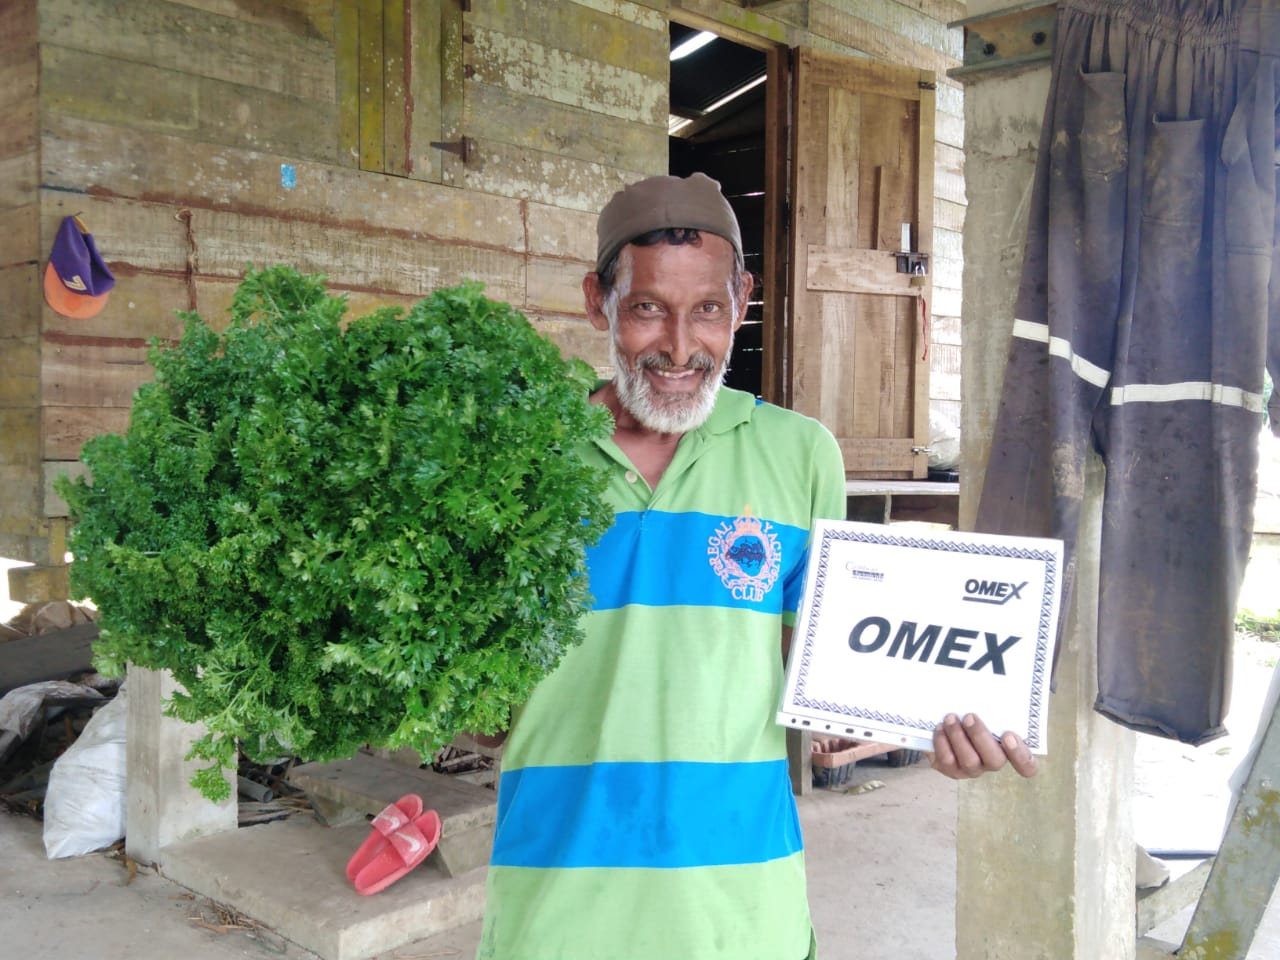 OMEX delivers big smiles